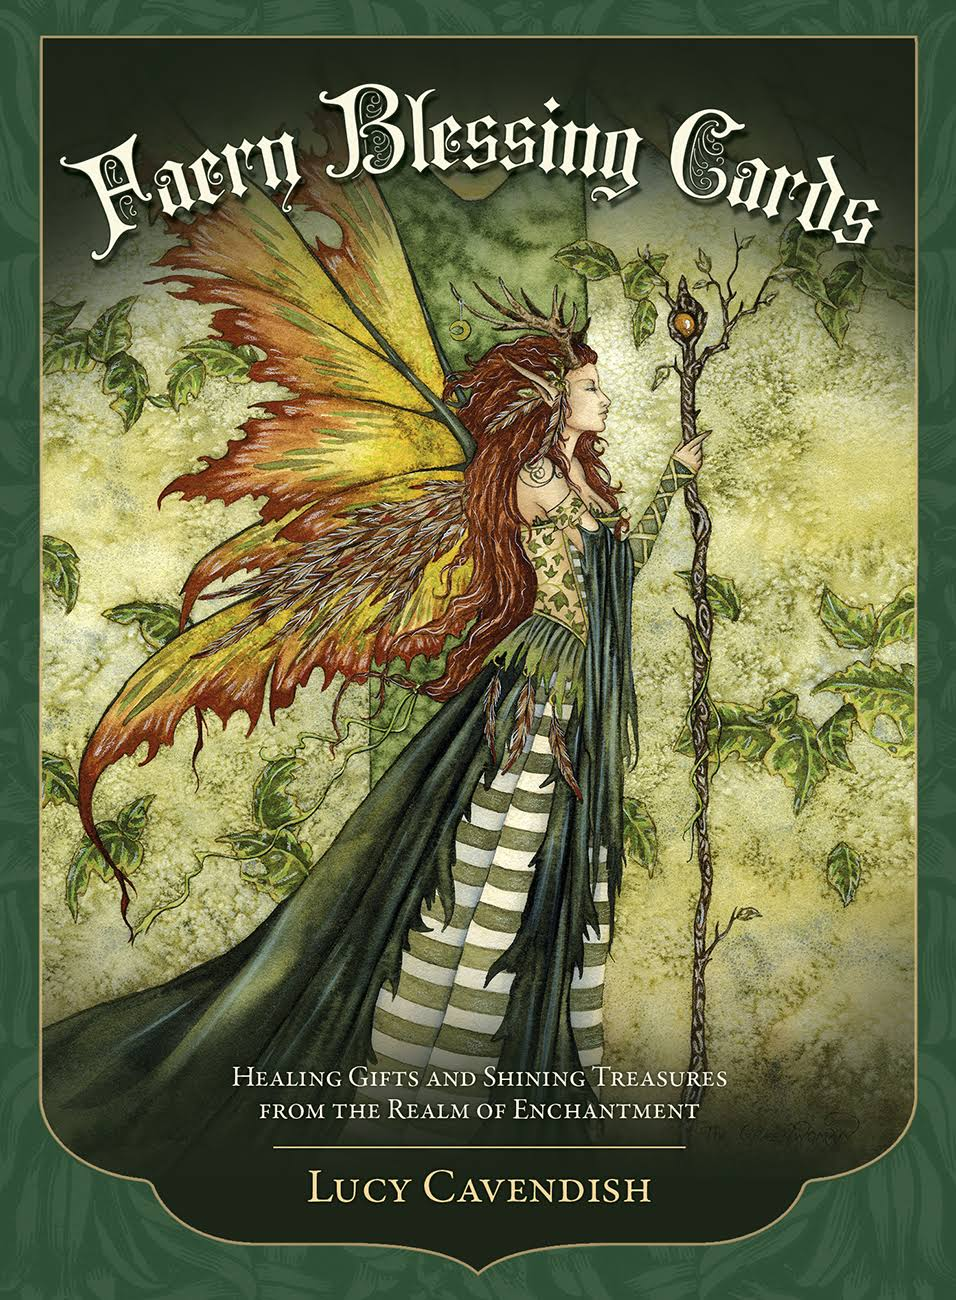 Faery Blessing Cards by Lucy Cavendish